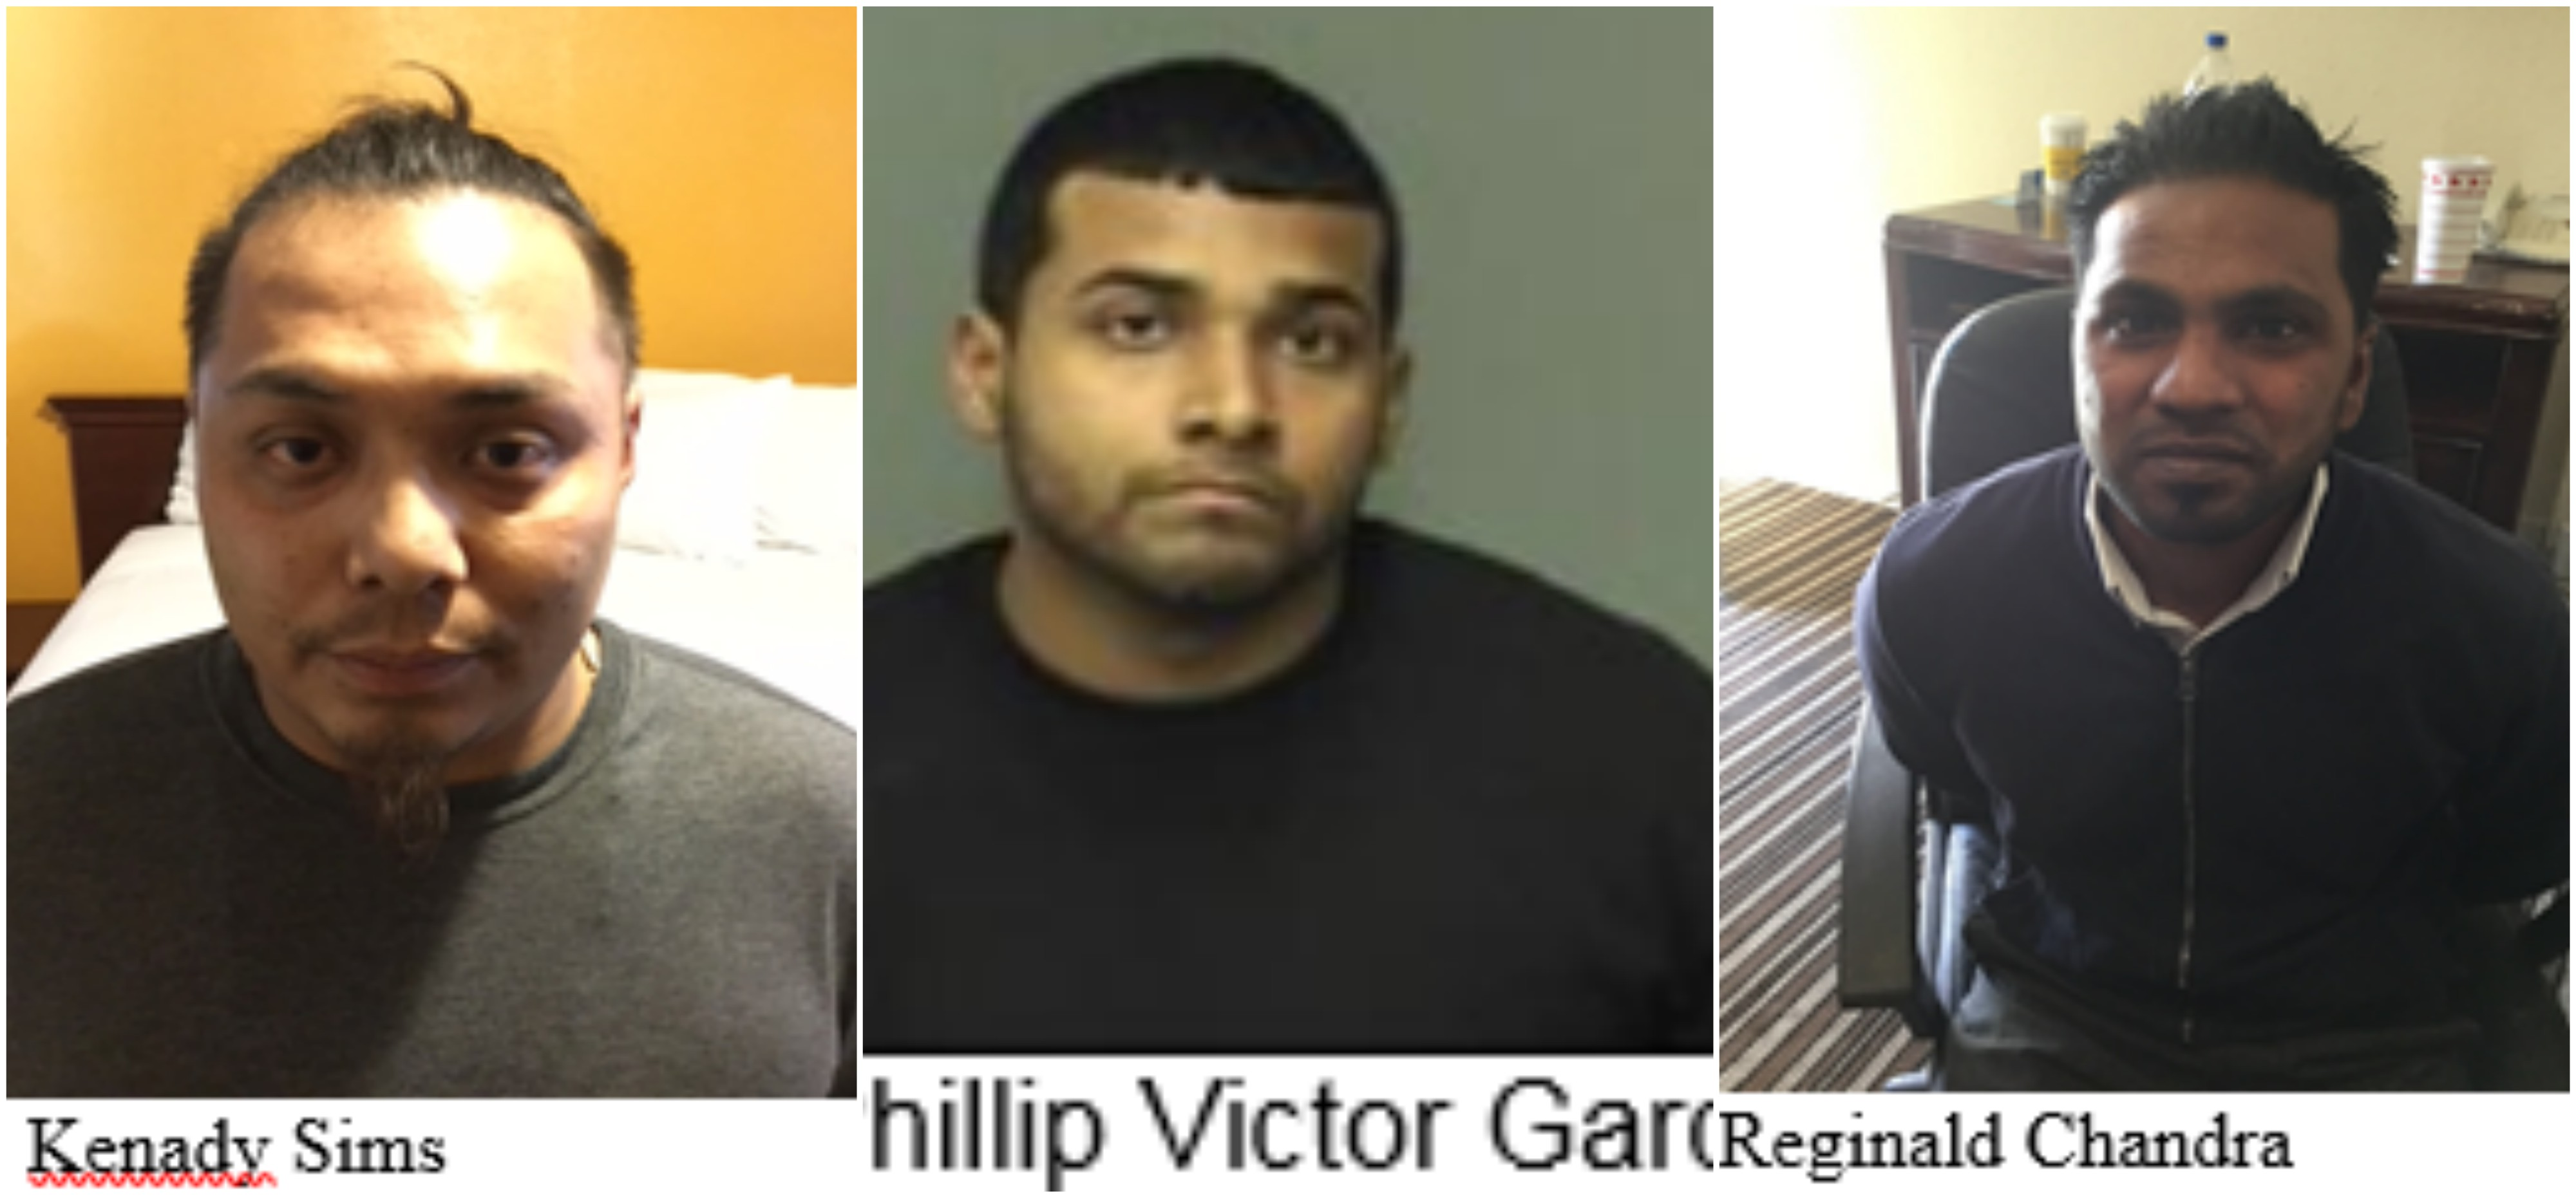 The Merced Police Department has announced that it made several arrests during a 3-day-long human trafficking operation. (Left to Right: Kenady Sims, Philip Victor Garcia, Reginald Chandra)<p></p>